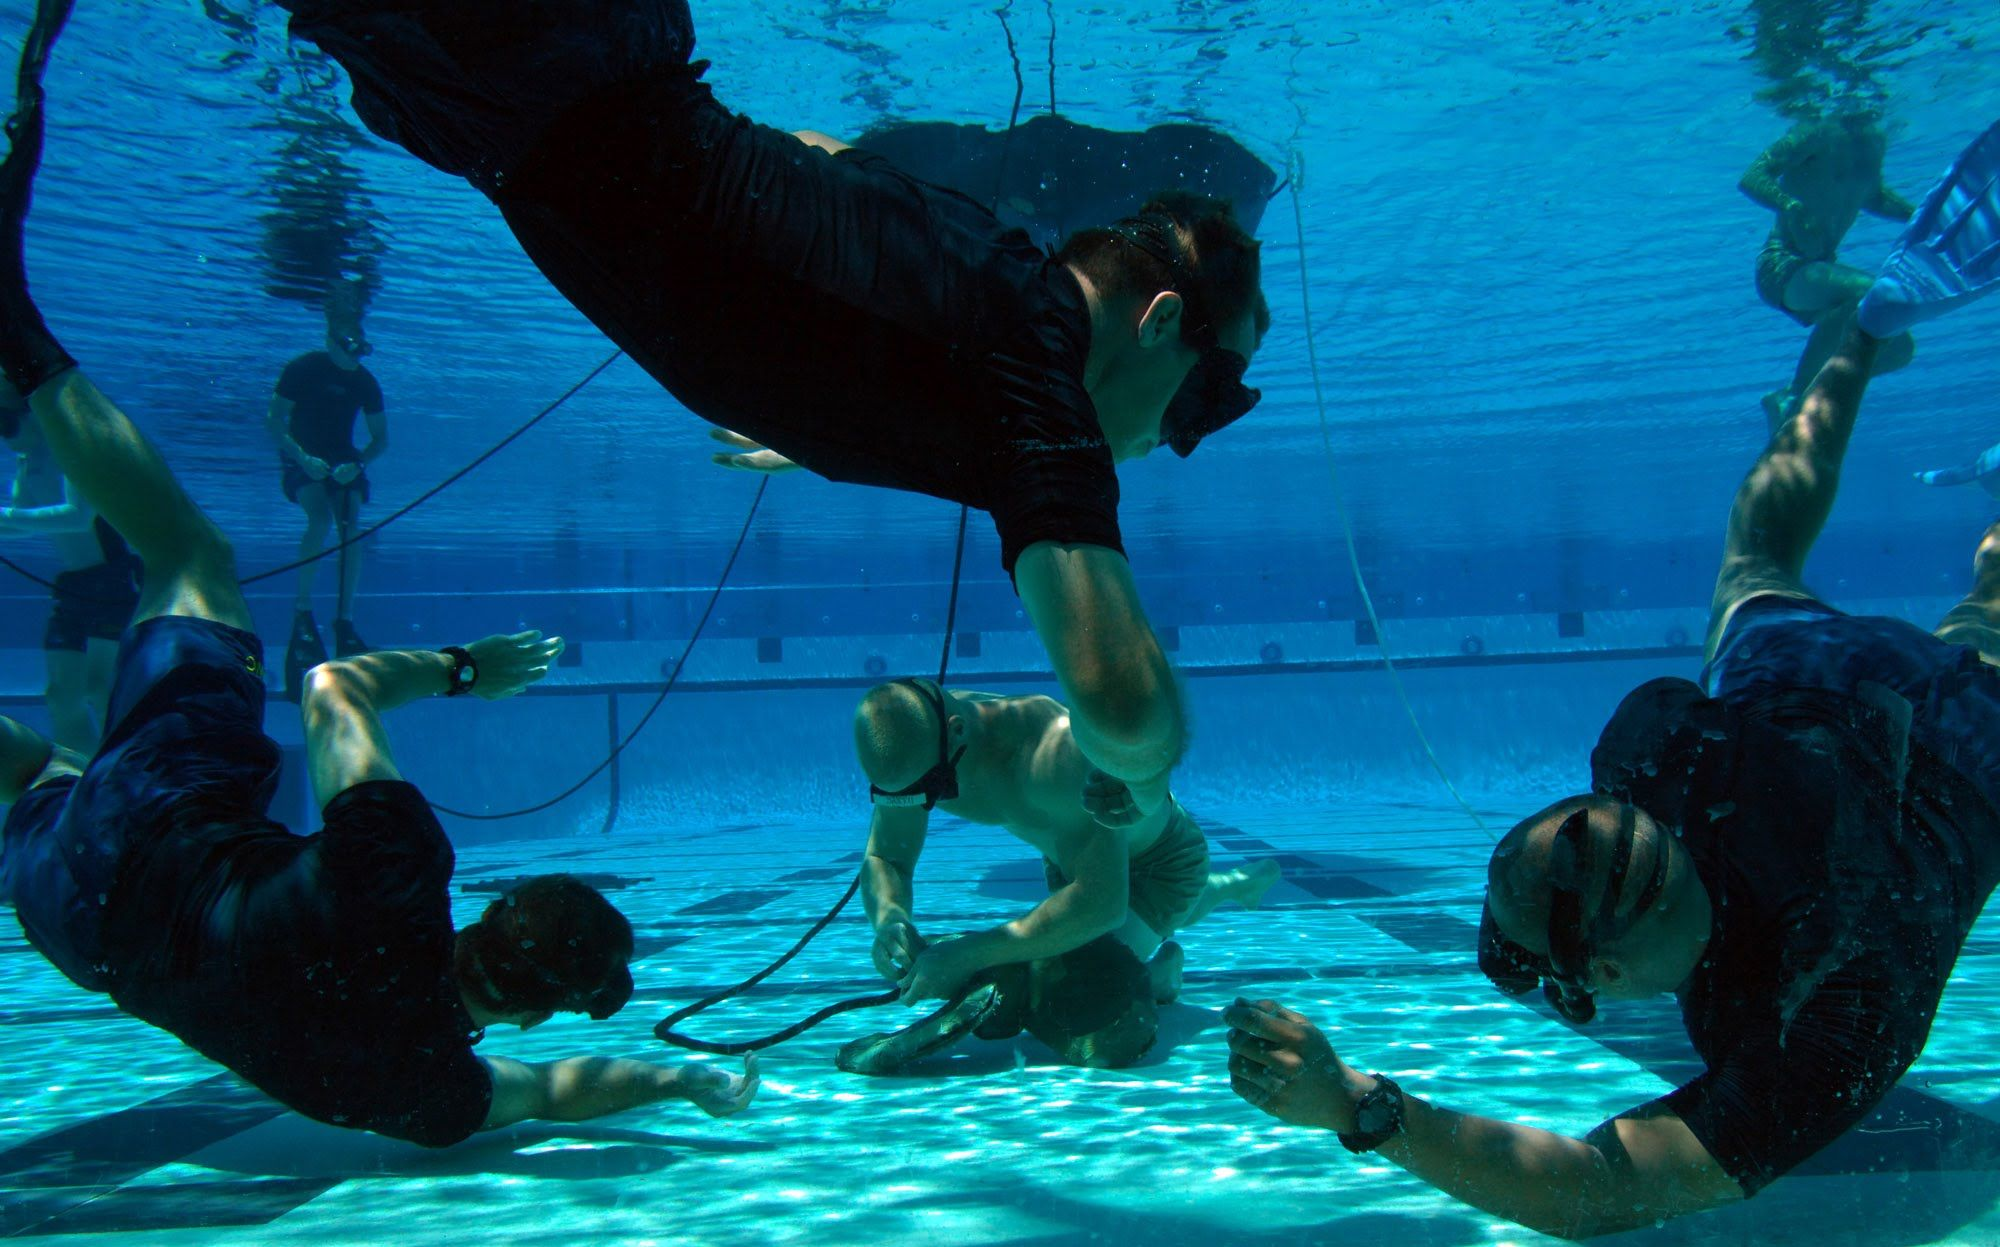 US Navy SEAL | Training Underwater Demolition | Military Special ...